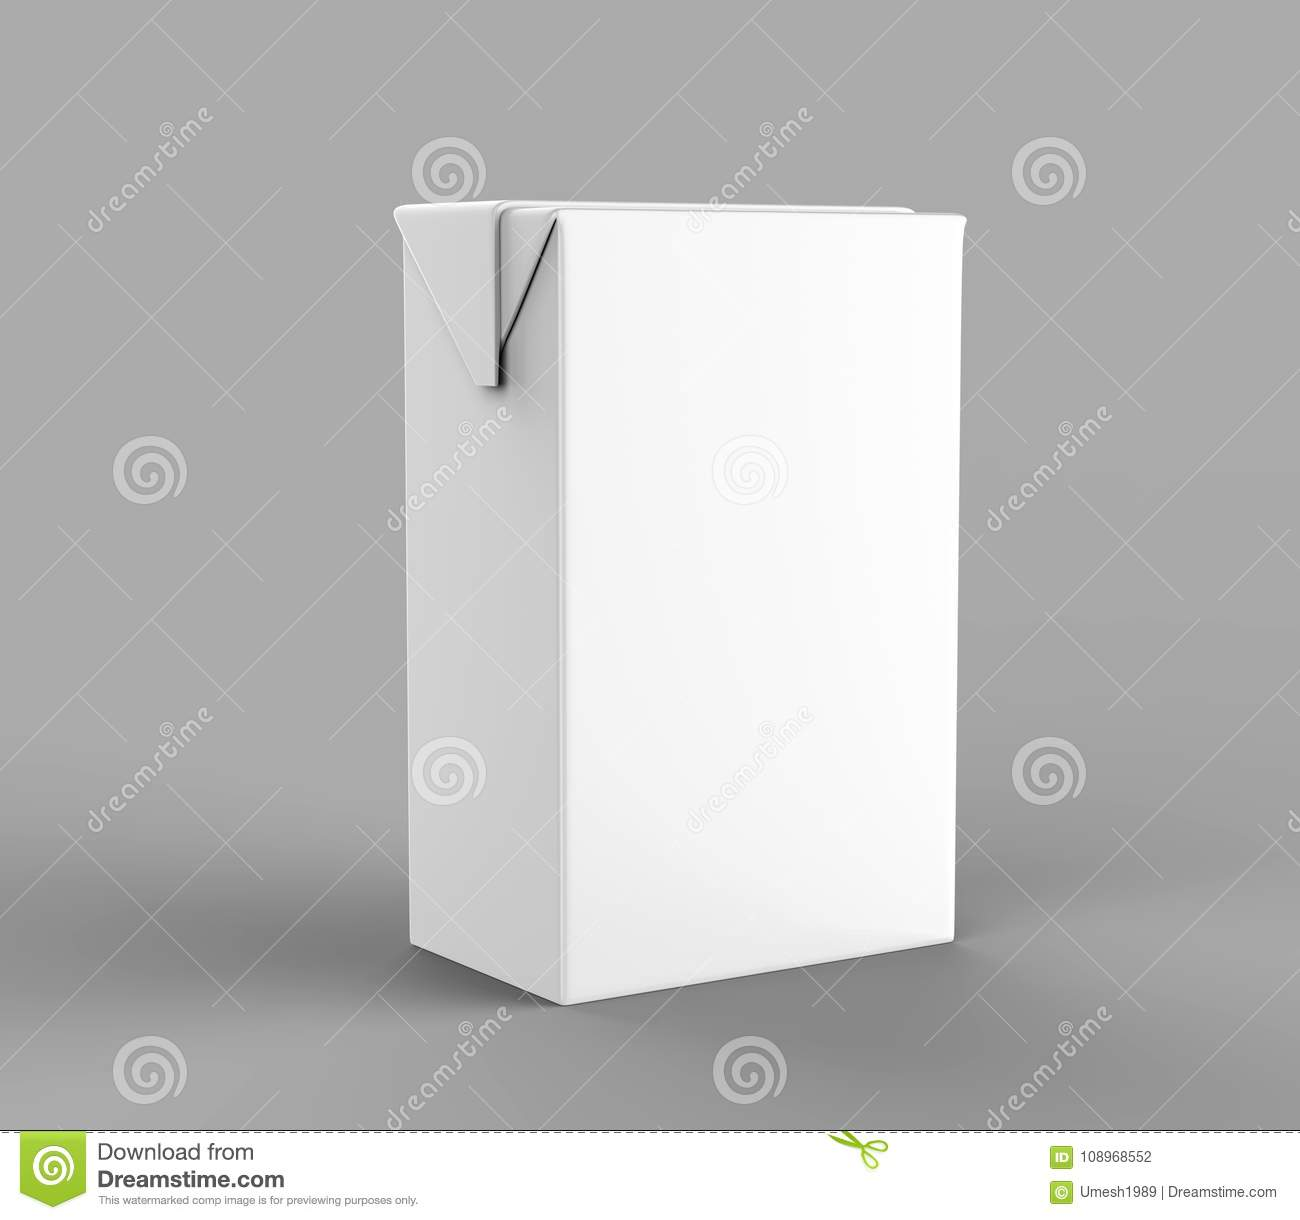 Blank White Packet Carton Juice Milk Pack With Straw Realistic Rendering For Mock Up